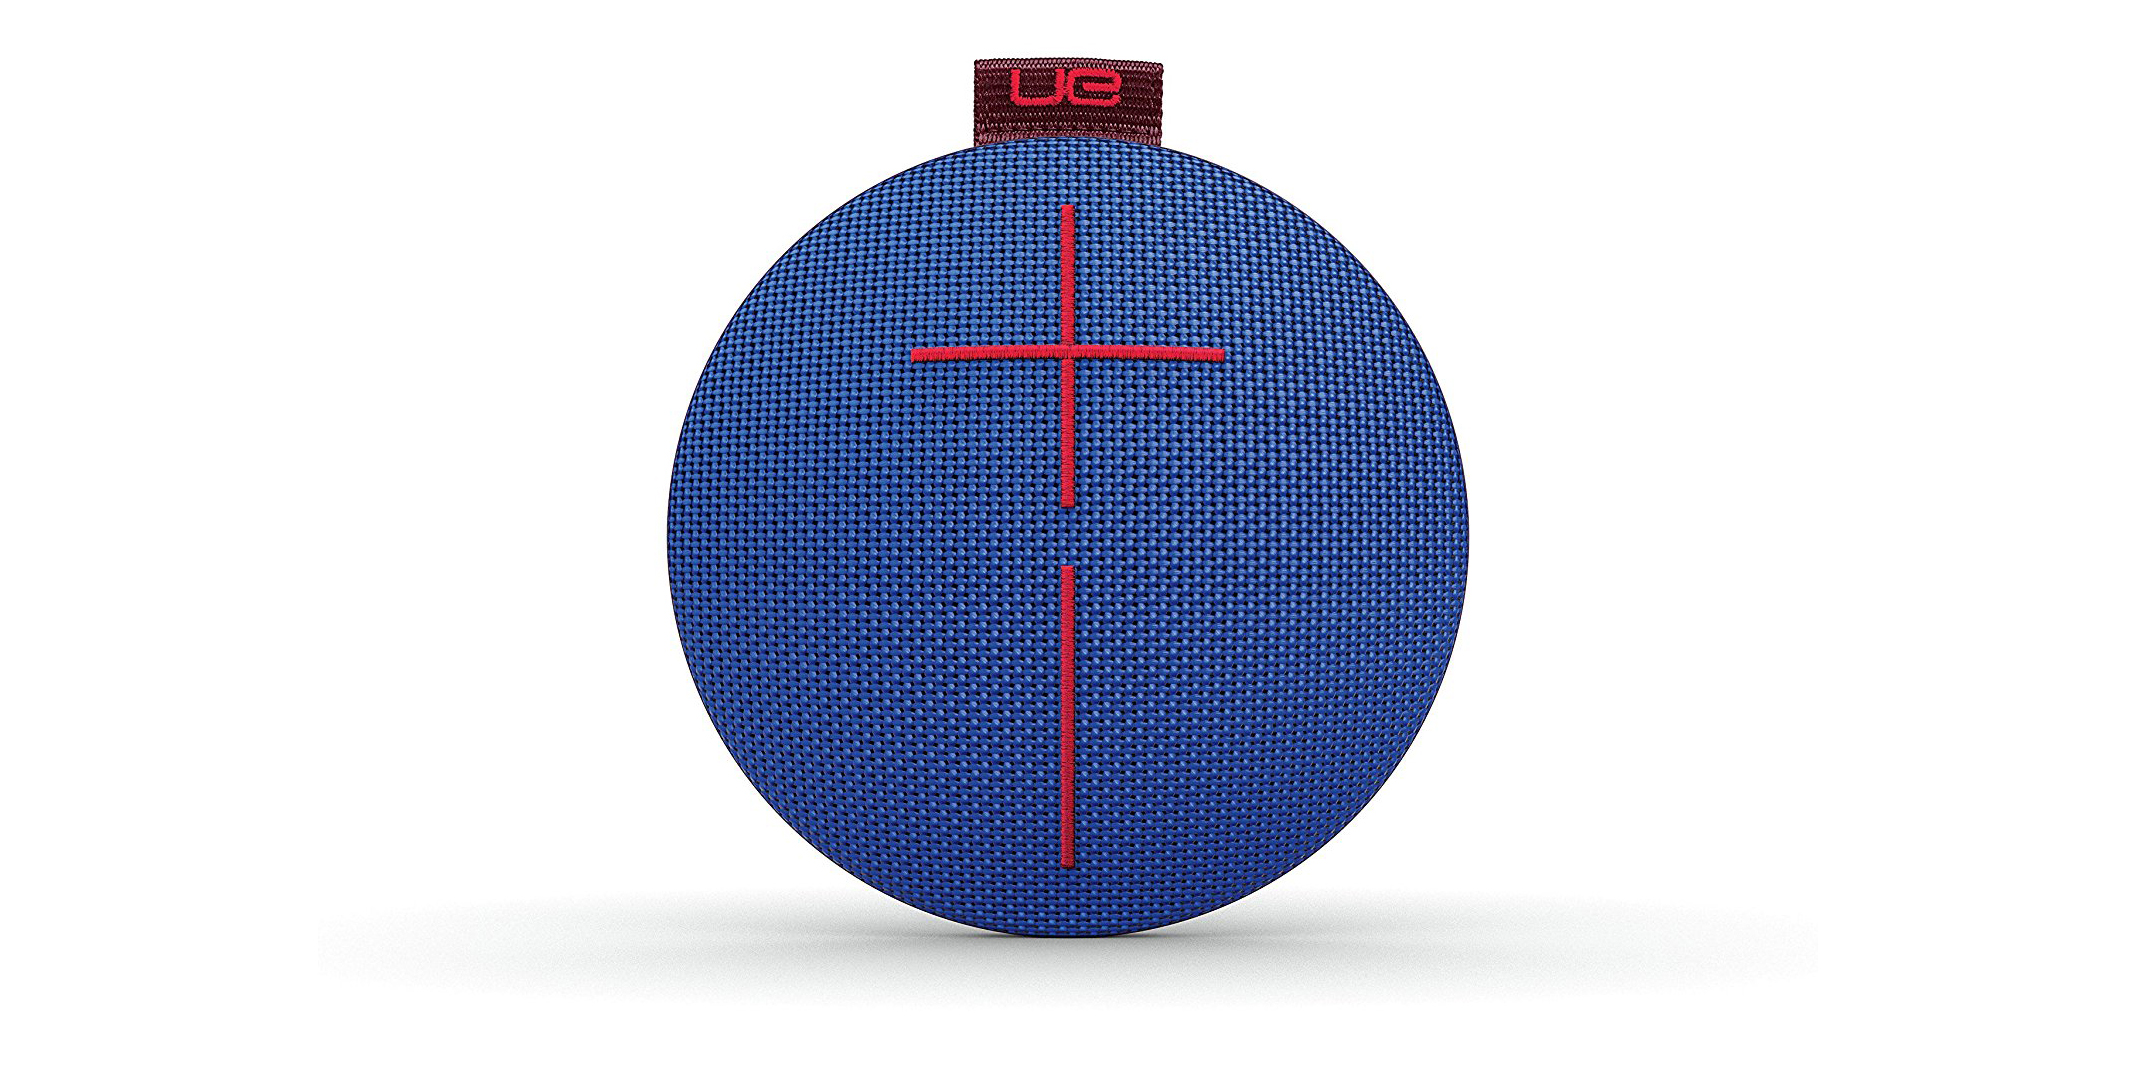 Listen to jams on the UE Roll 2 Bluetooth Speaker for $28 shipped (Refurb, Orig. $100)